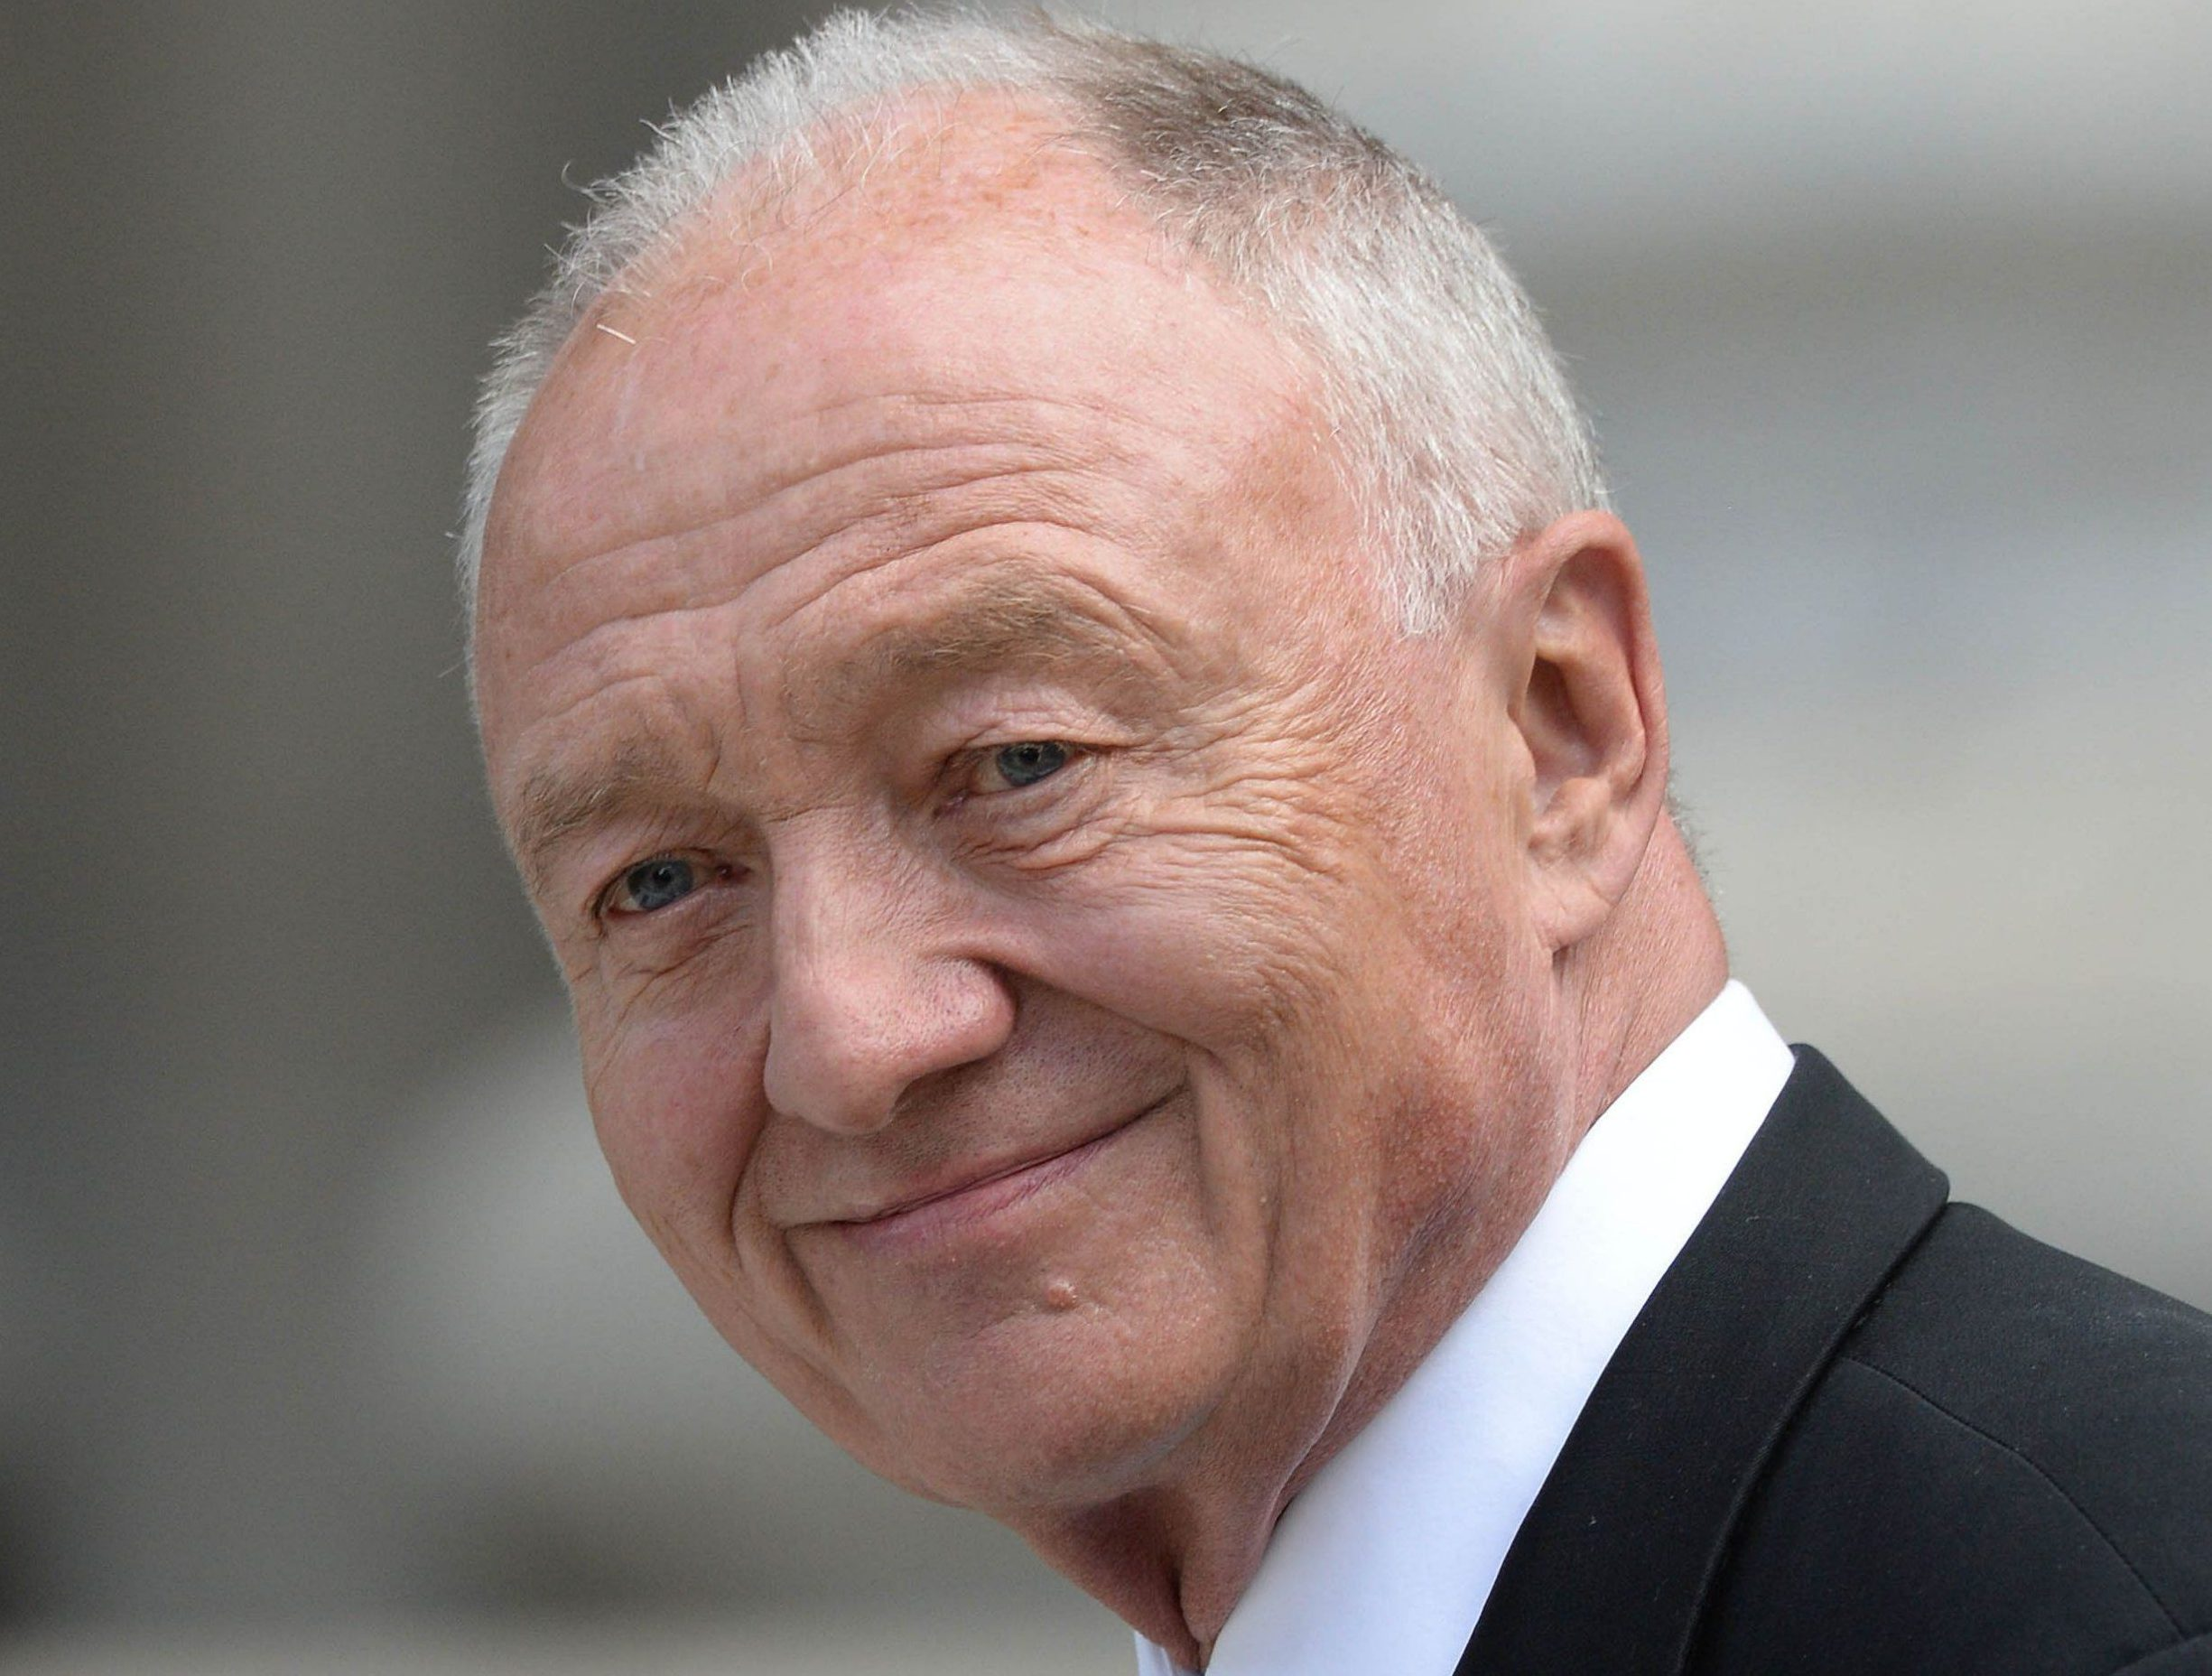 Mandatory Credit: Photo by Andrew Parsons/REX/Shutterstock (4900334ac)nKen Livingstone attends a service at St Paul's Cathedral, to mark the 10th anniversary of the London 7/7 bombingsn10th anniversary of 7/7 London bombings, Britain - 07 Jul 2015nn